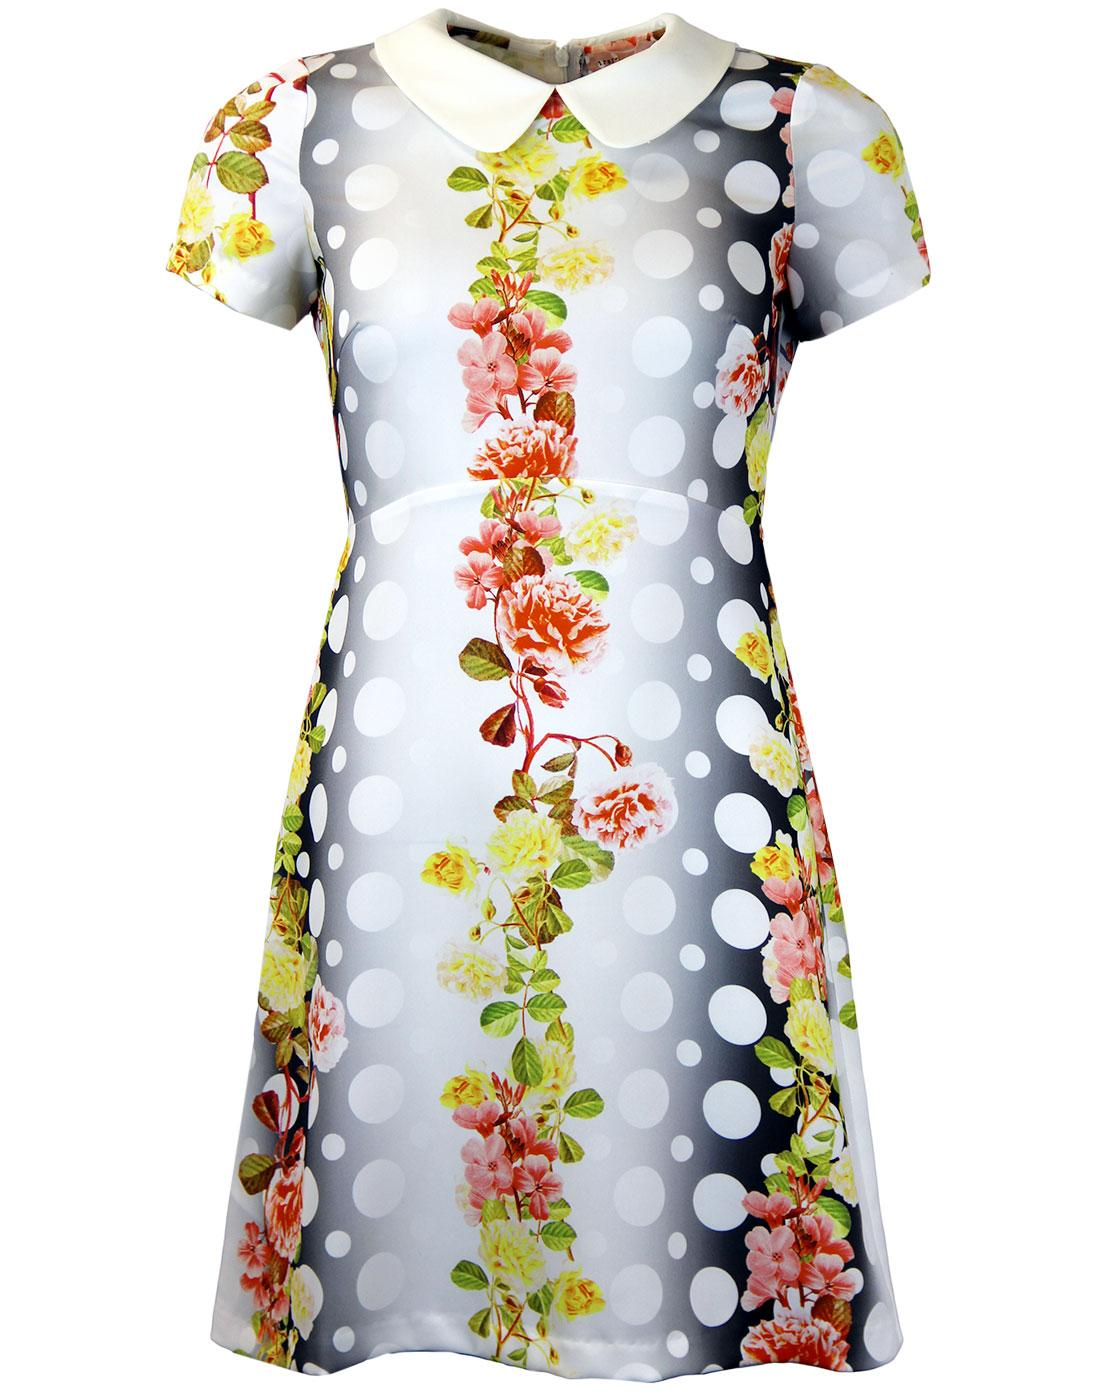 Singing Garlands TRAFFIC PEOPLE 60s Mod Dress